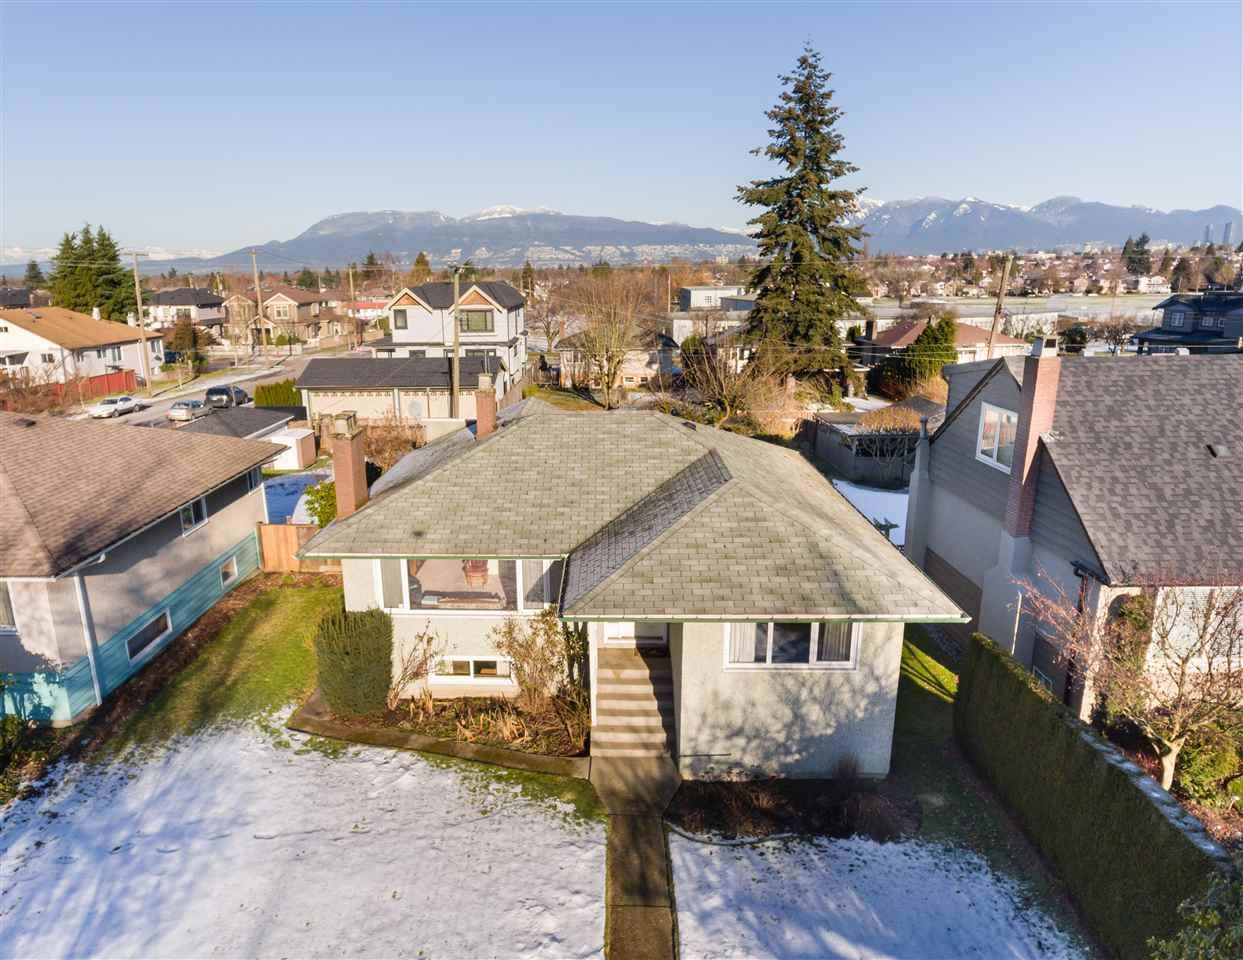 Main Photo: 2685 W KING EDWARD Avenue in Vancouver: Arbutus House for sale (Vancouver West)  : MLS®# R2133138